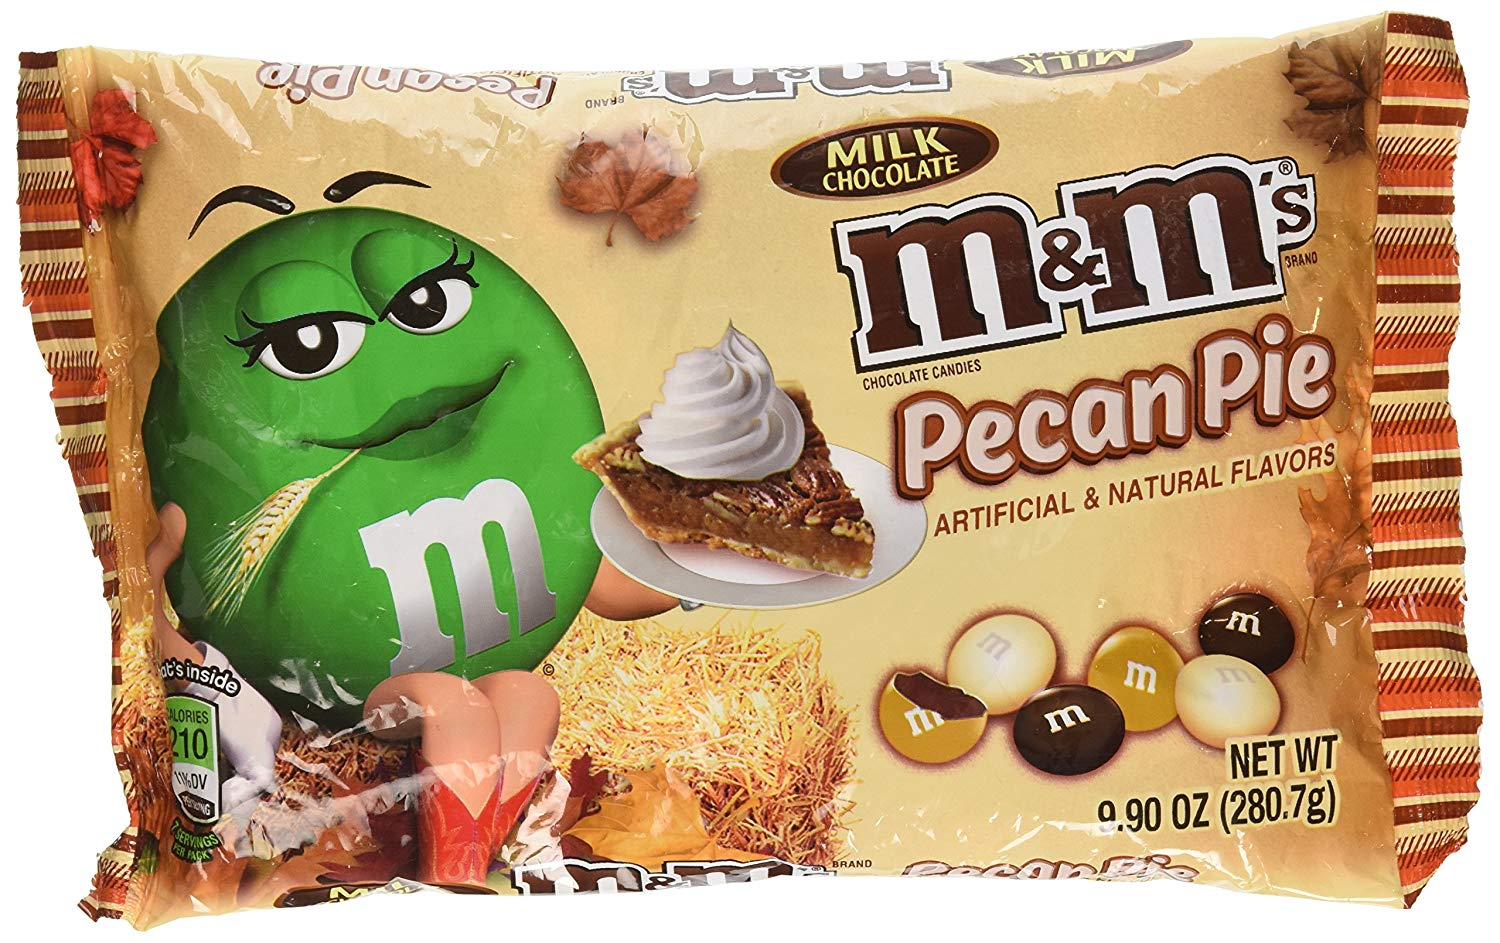 Hey Southerners, Pecan Pie M&M's Are Back for a Limited Time This Fall